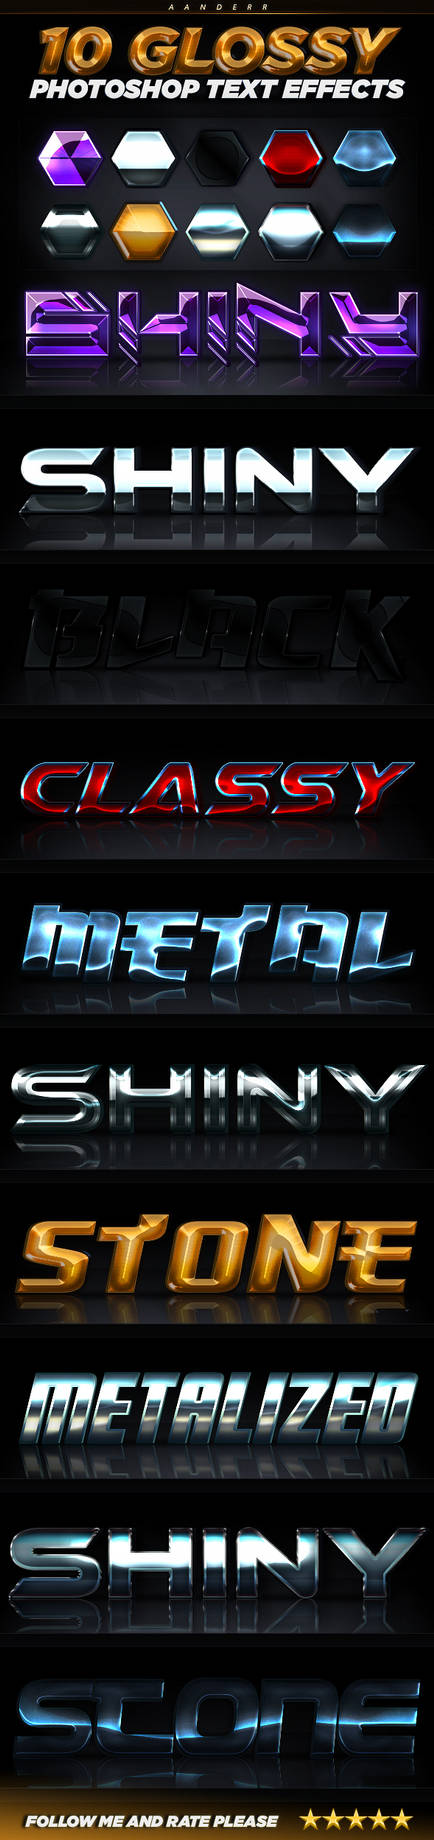 10 Glossy Photoshop Text Effects (Professional) by aanderr